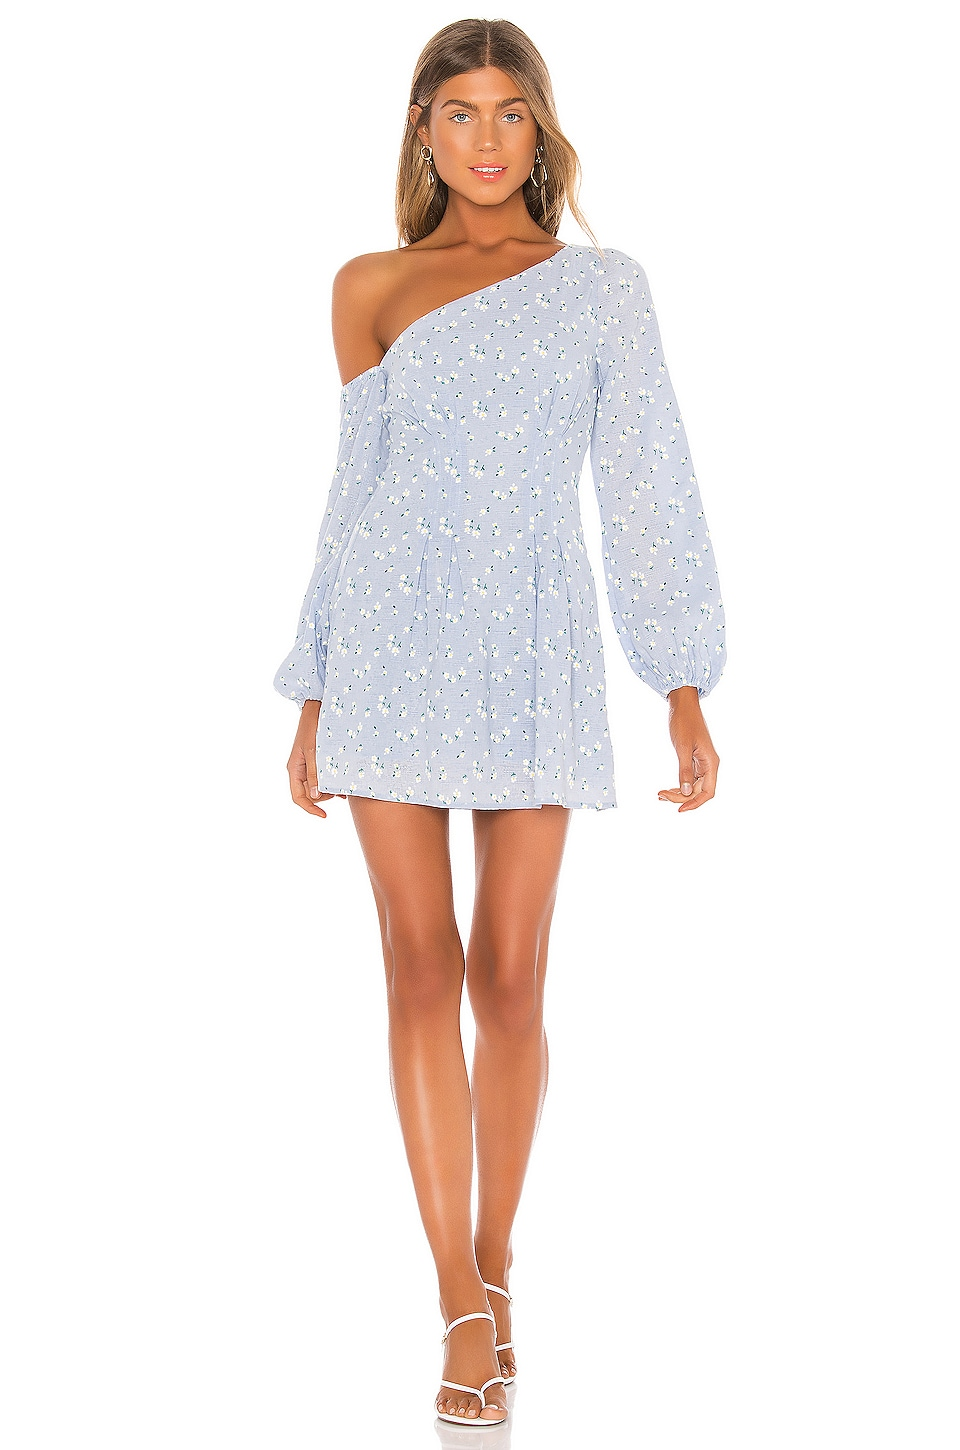 MAJORELLE Mandy Mini Dress in Baby Blue Ditsy